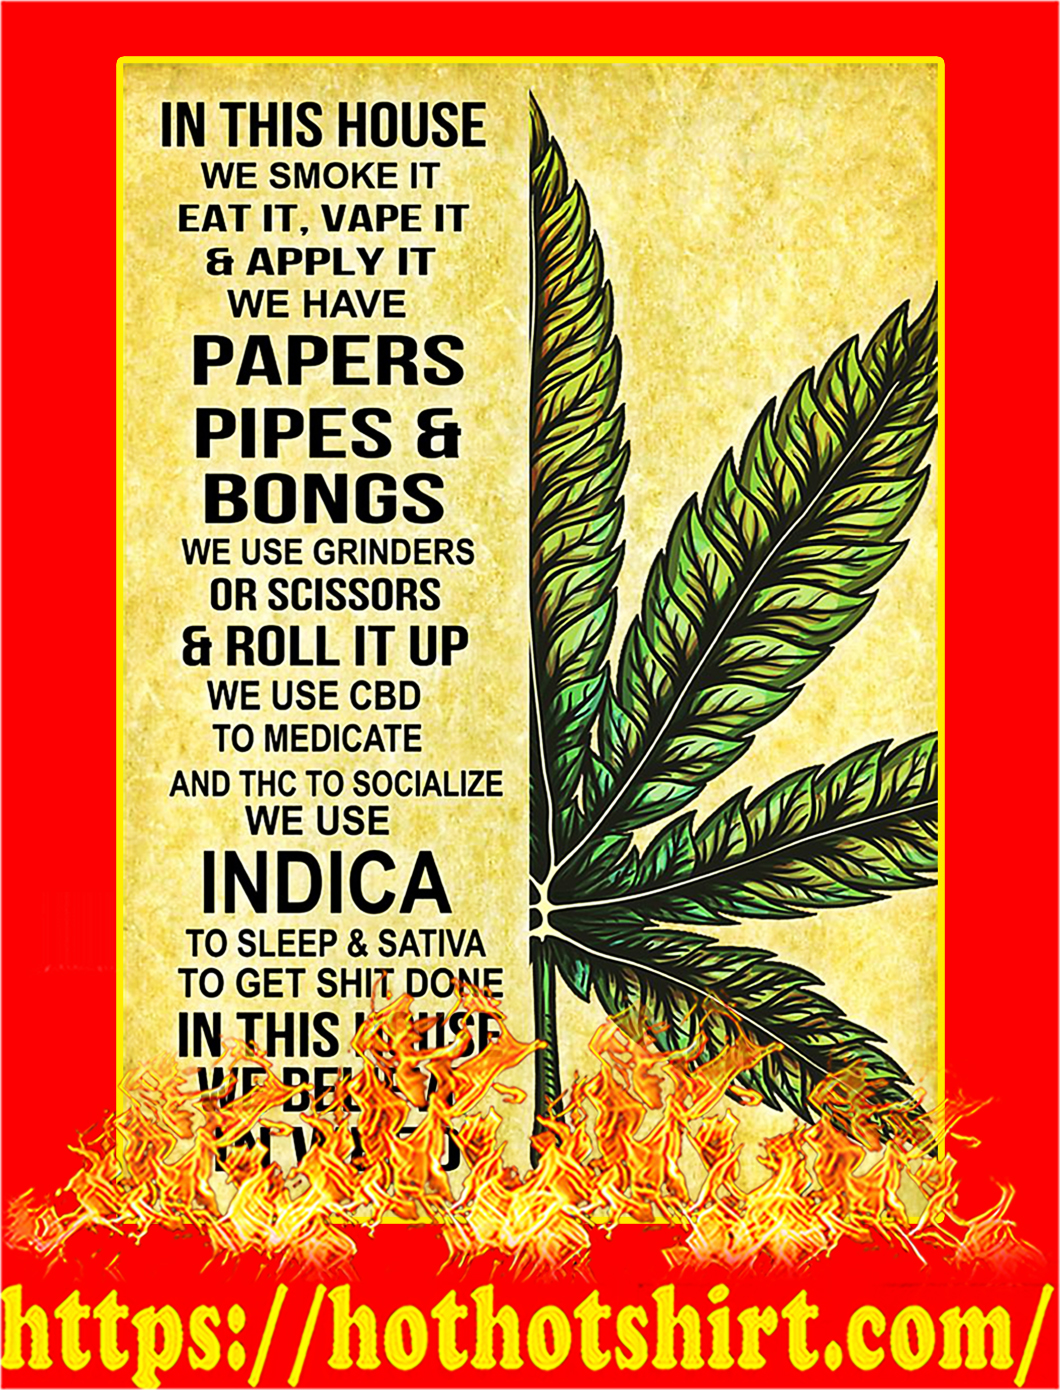 Weed in this house we smoke it eat it poster - A2